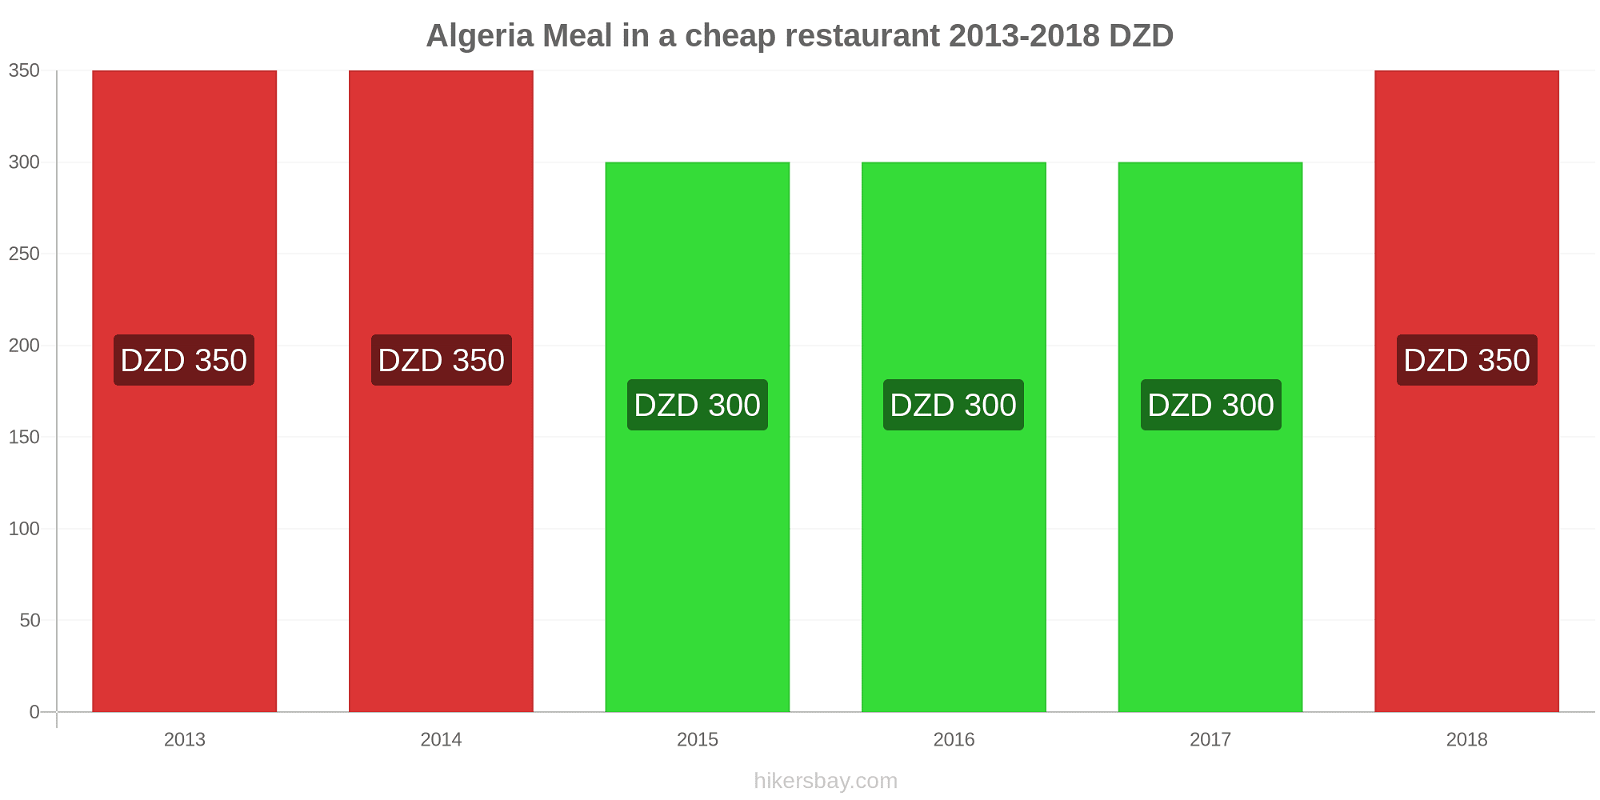 Algeria price changes Meal in a cheap restaurant hikersbay.com